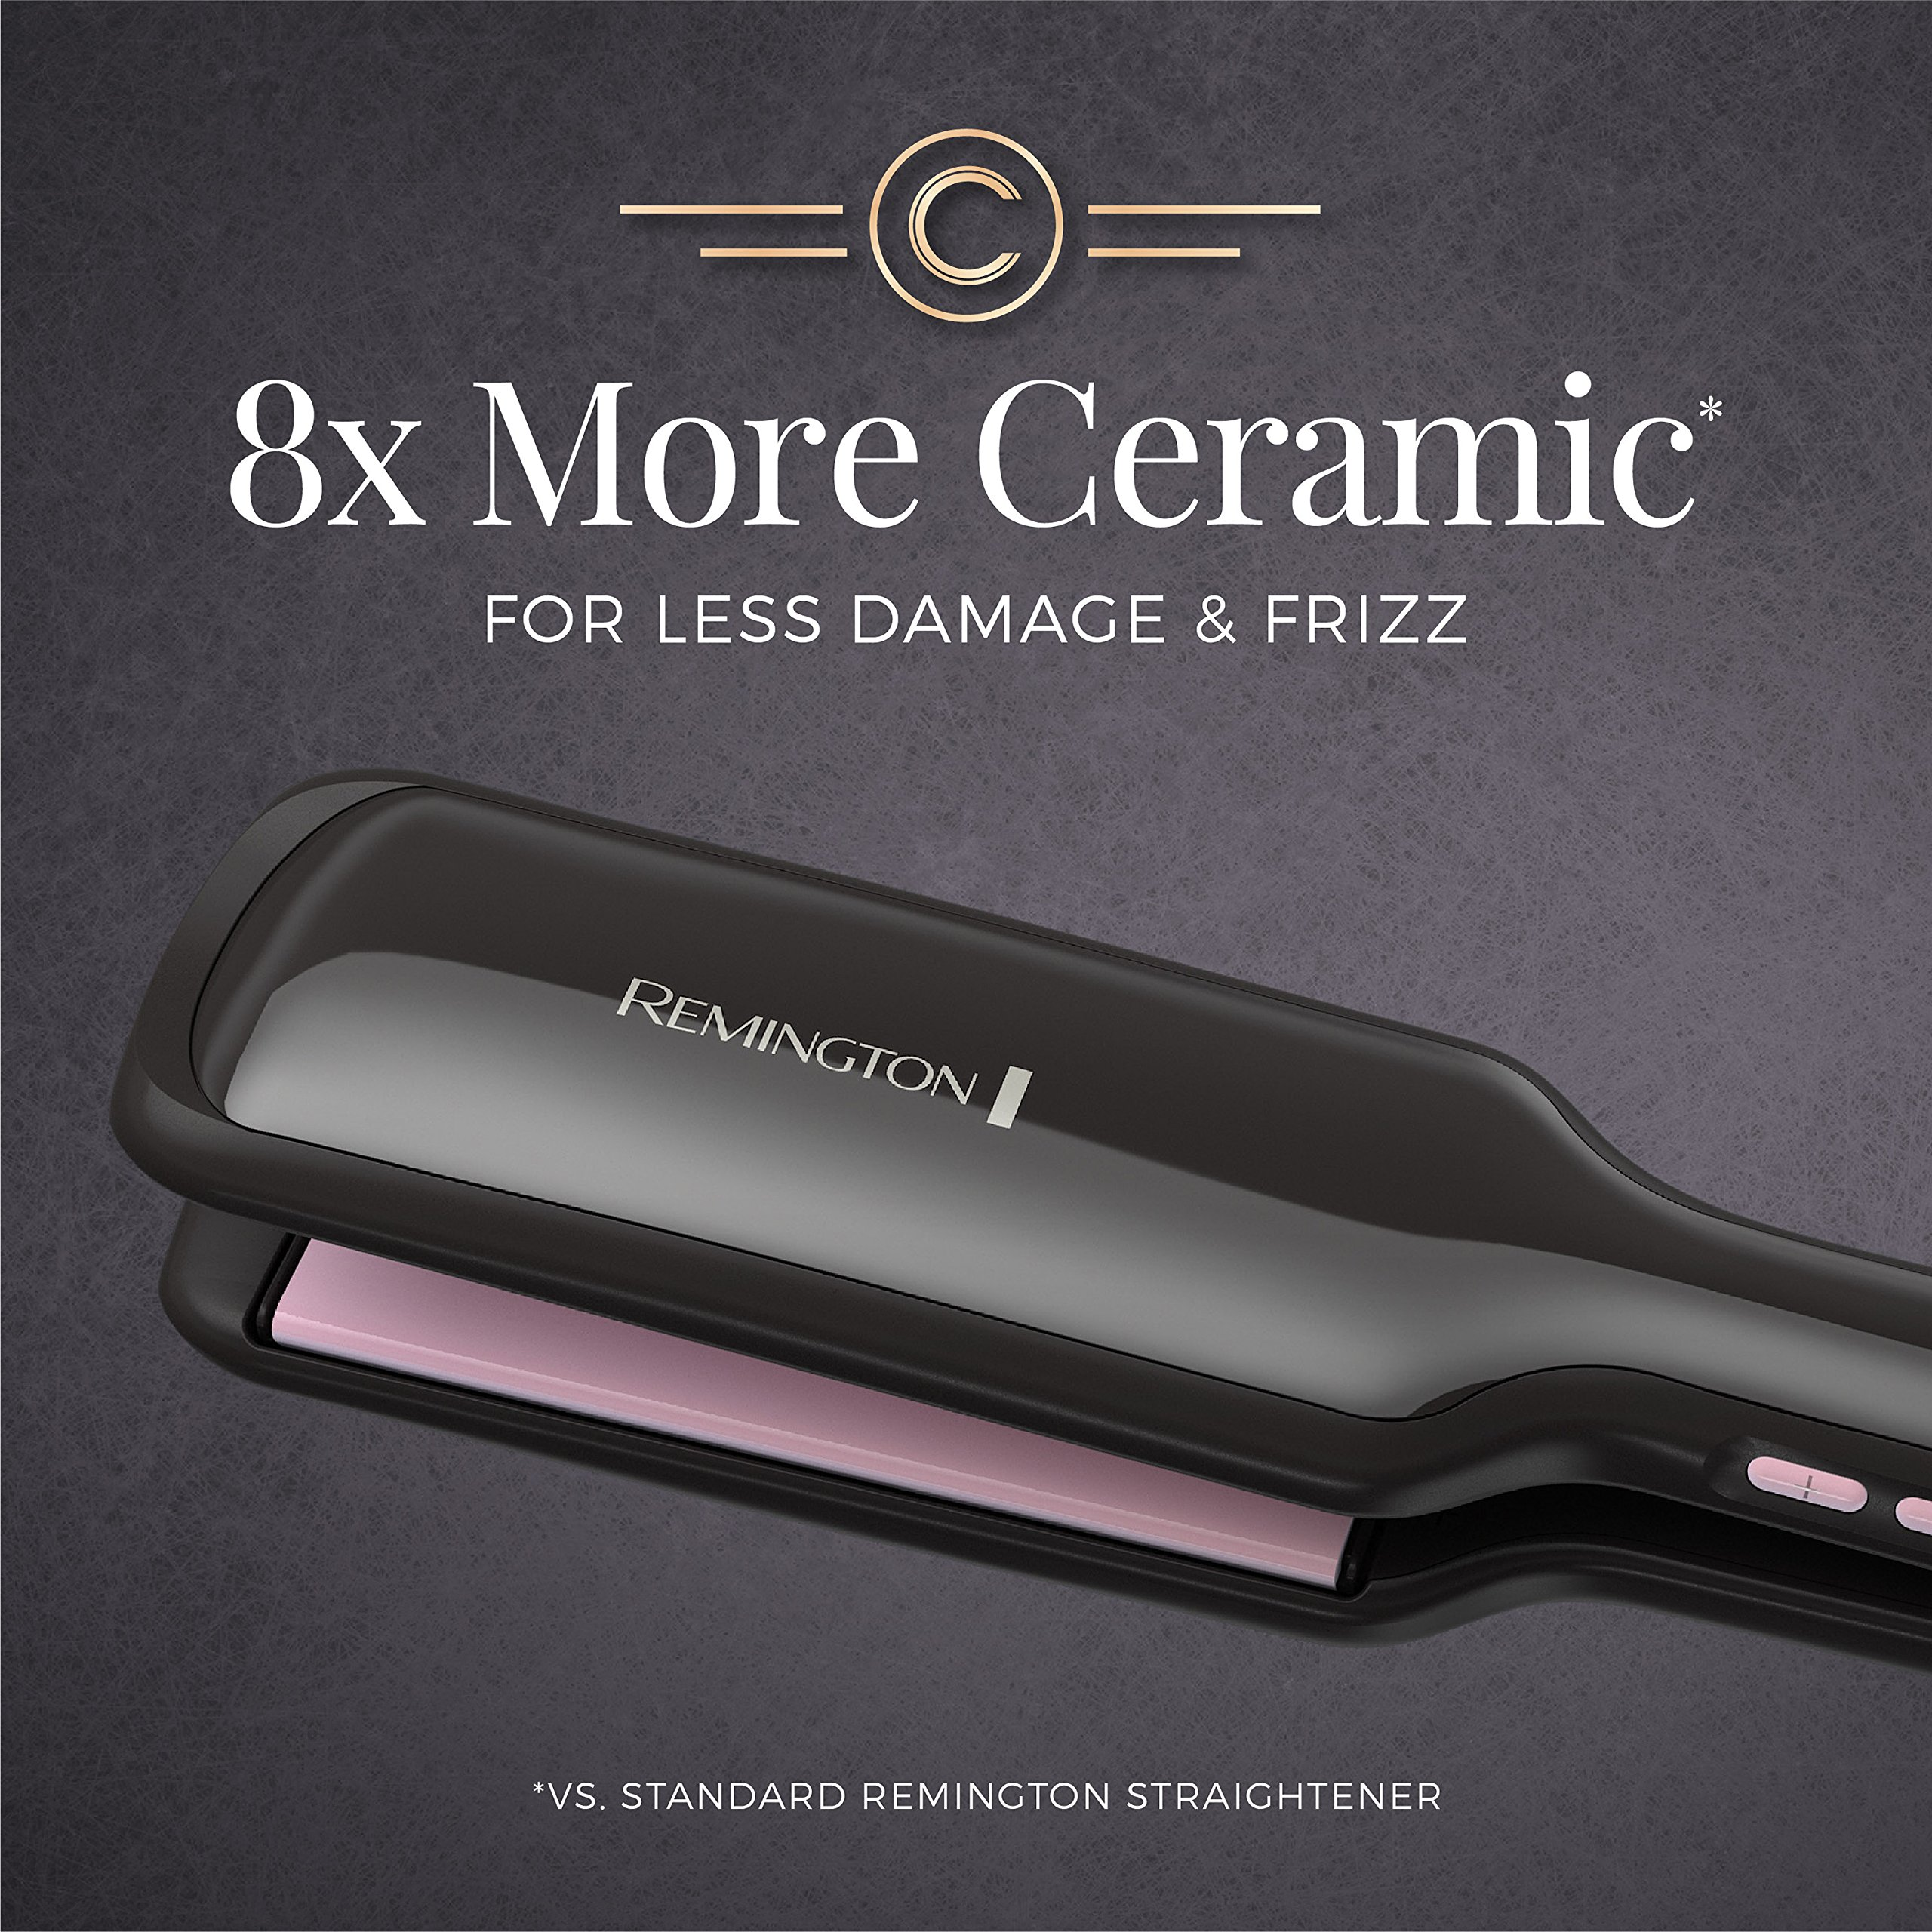 Remington Pro 2'' Flat Iron with Pearl Ceramic Technology and Digital Controls, Black, S9520 by Remington (Image #5)